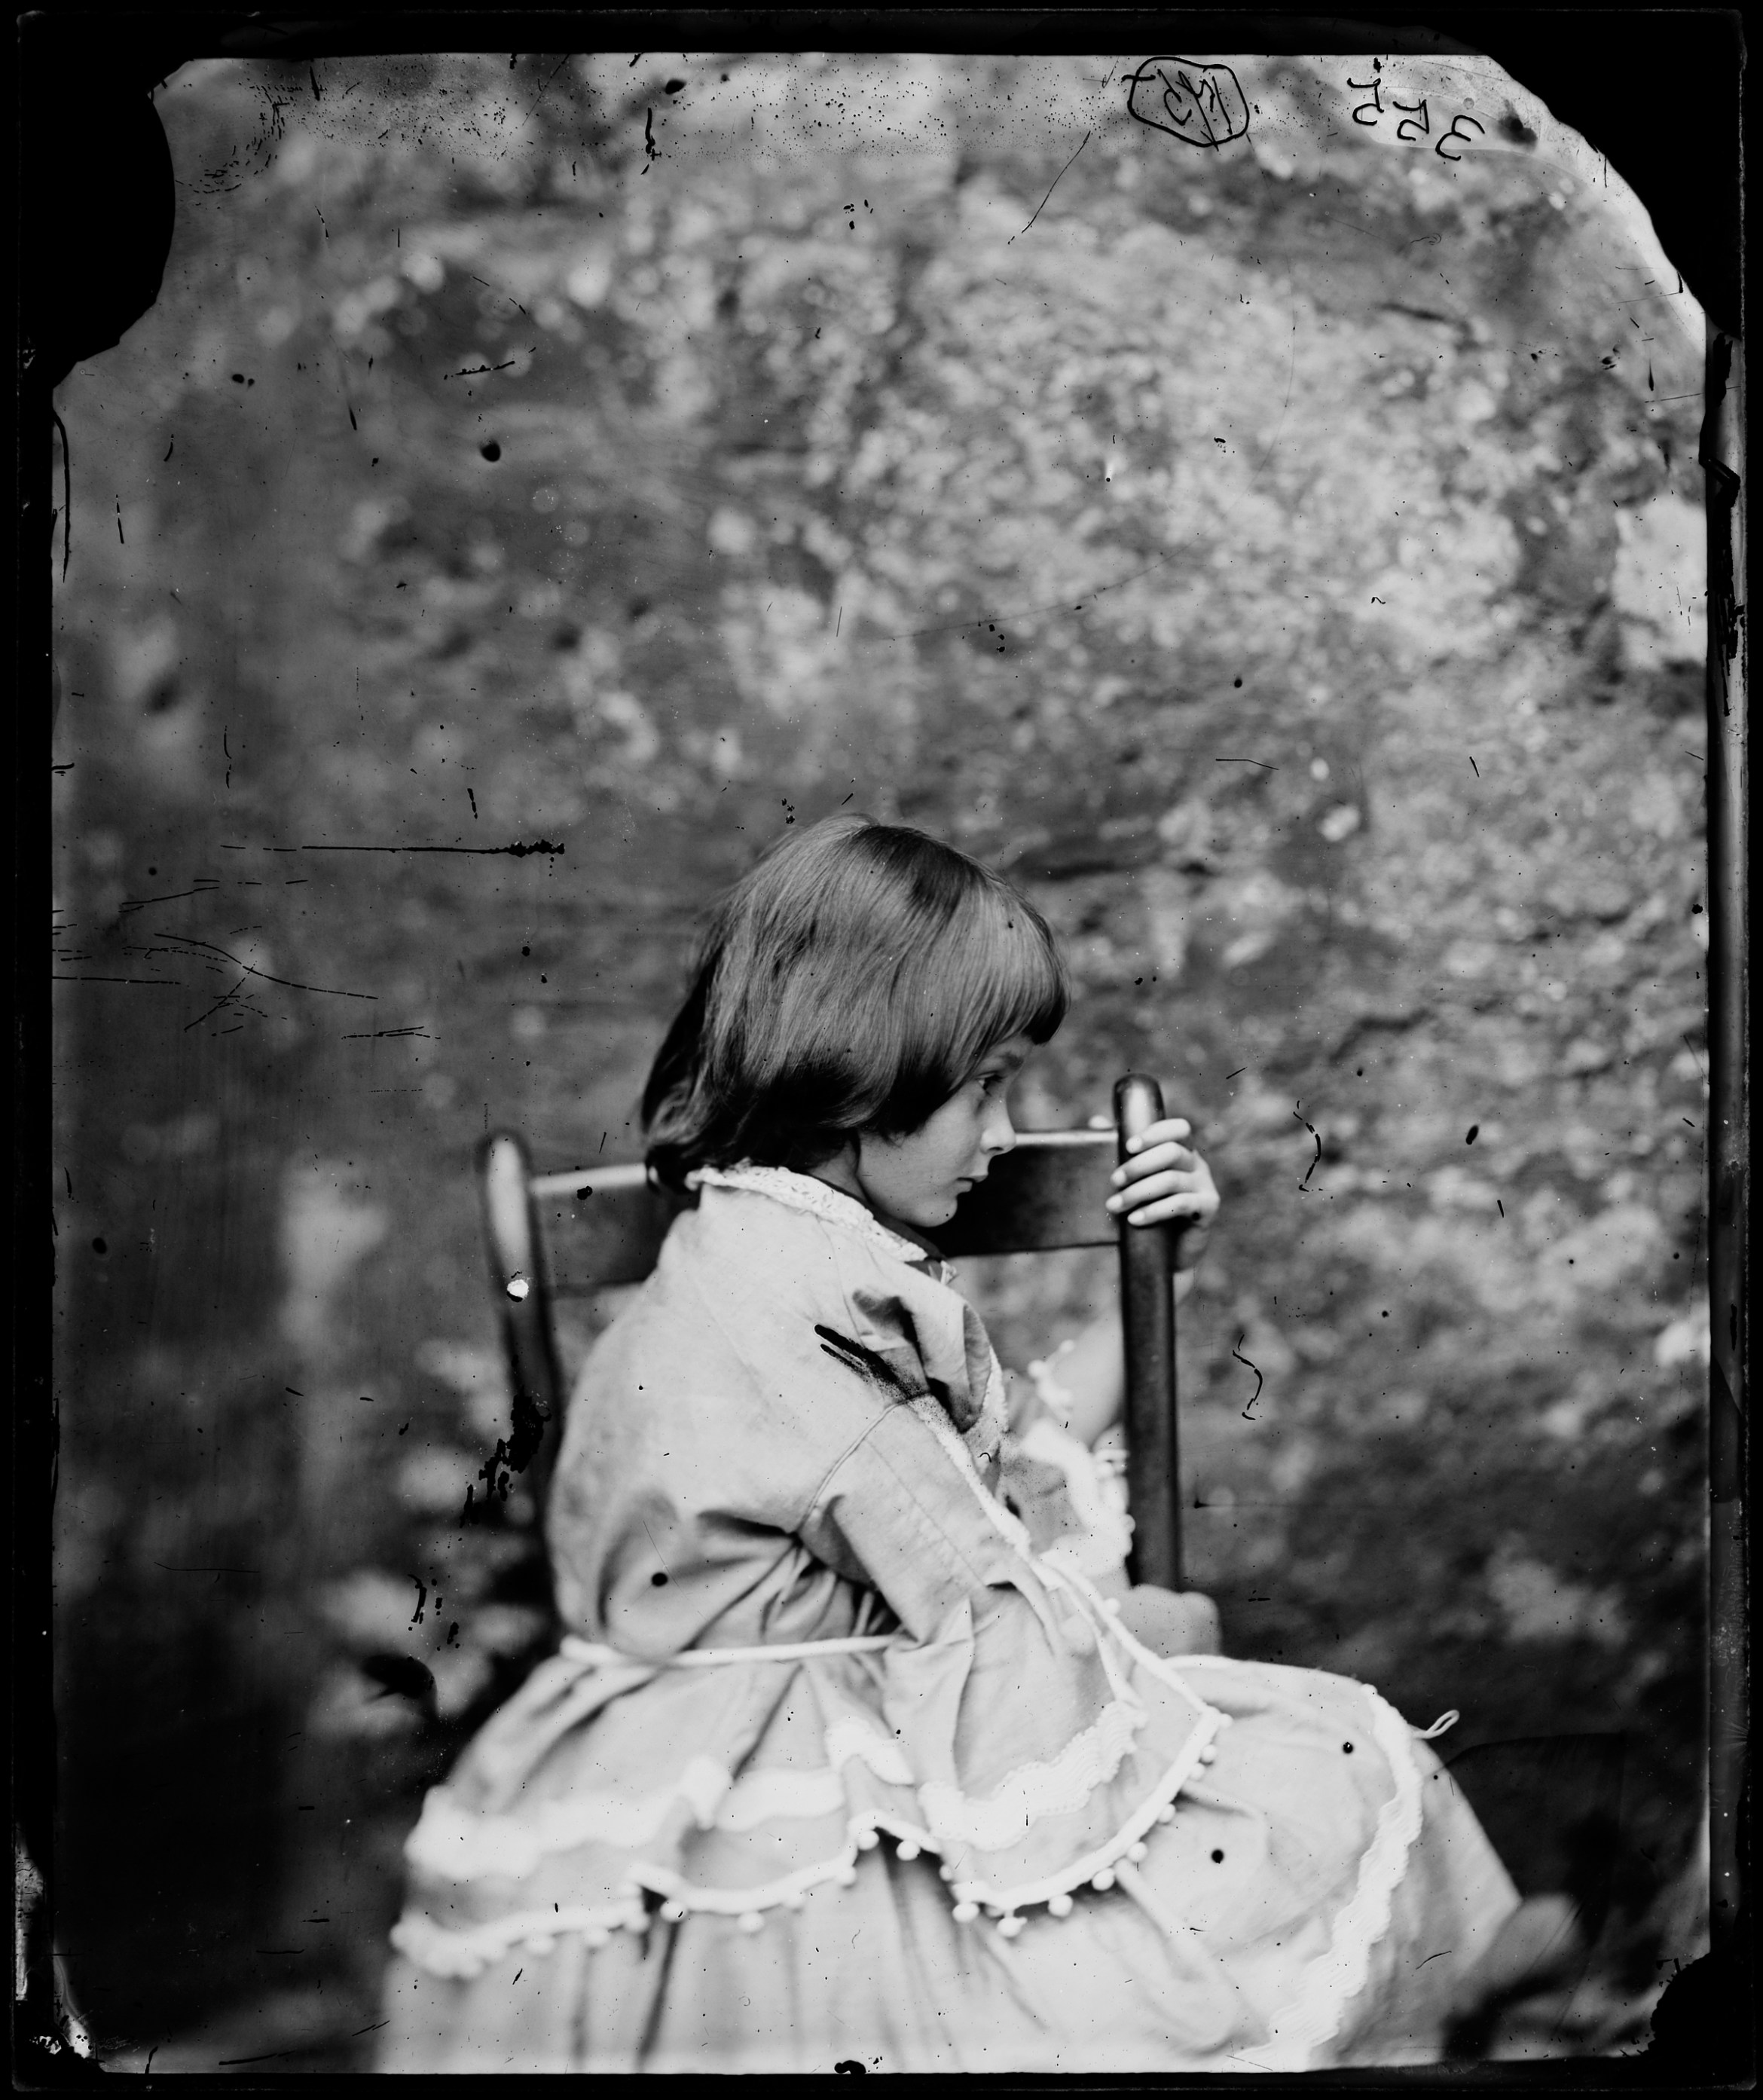 053_Alice Liddell by Lewis Carroll, 1858